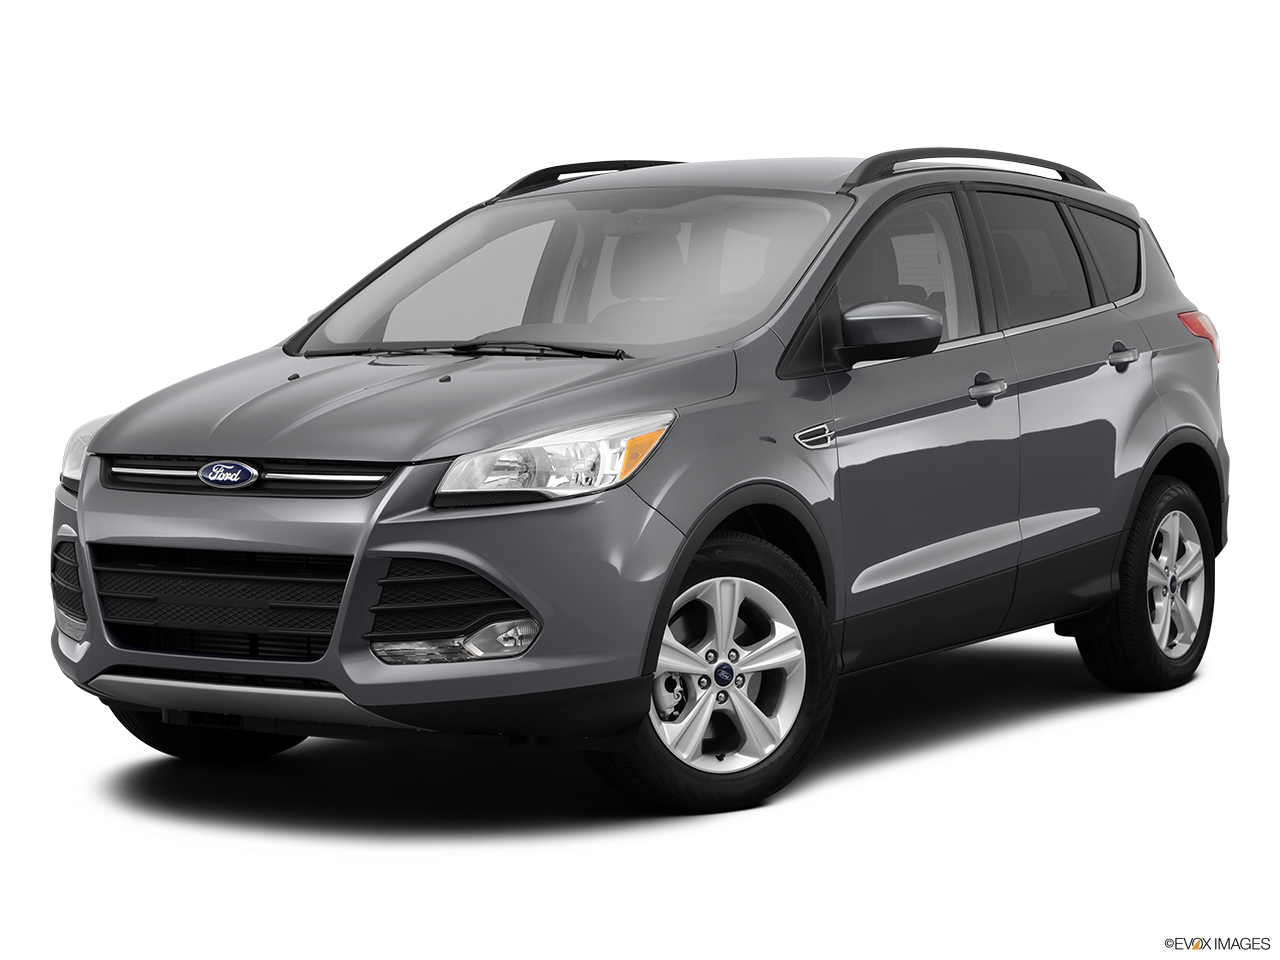 2014 ford escape consumer review autos post. Black Bedroom Furniture Sets. Home Design Ideas